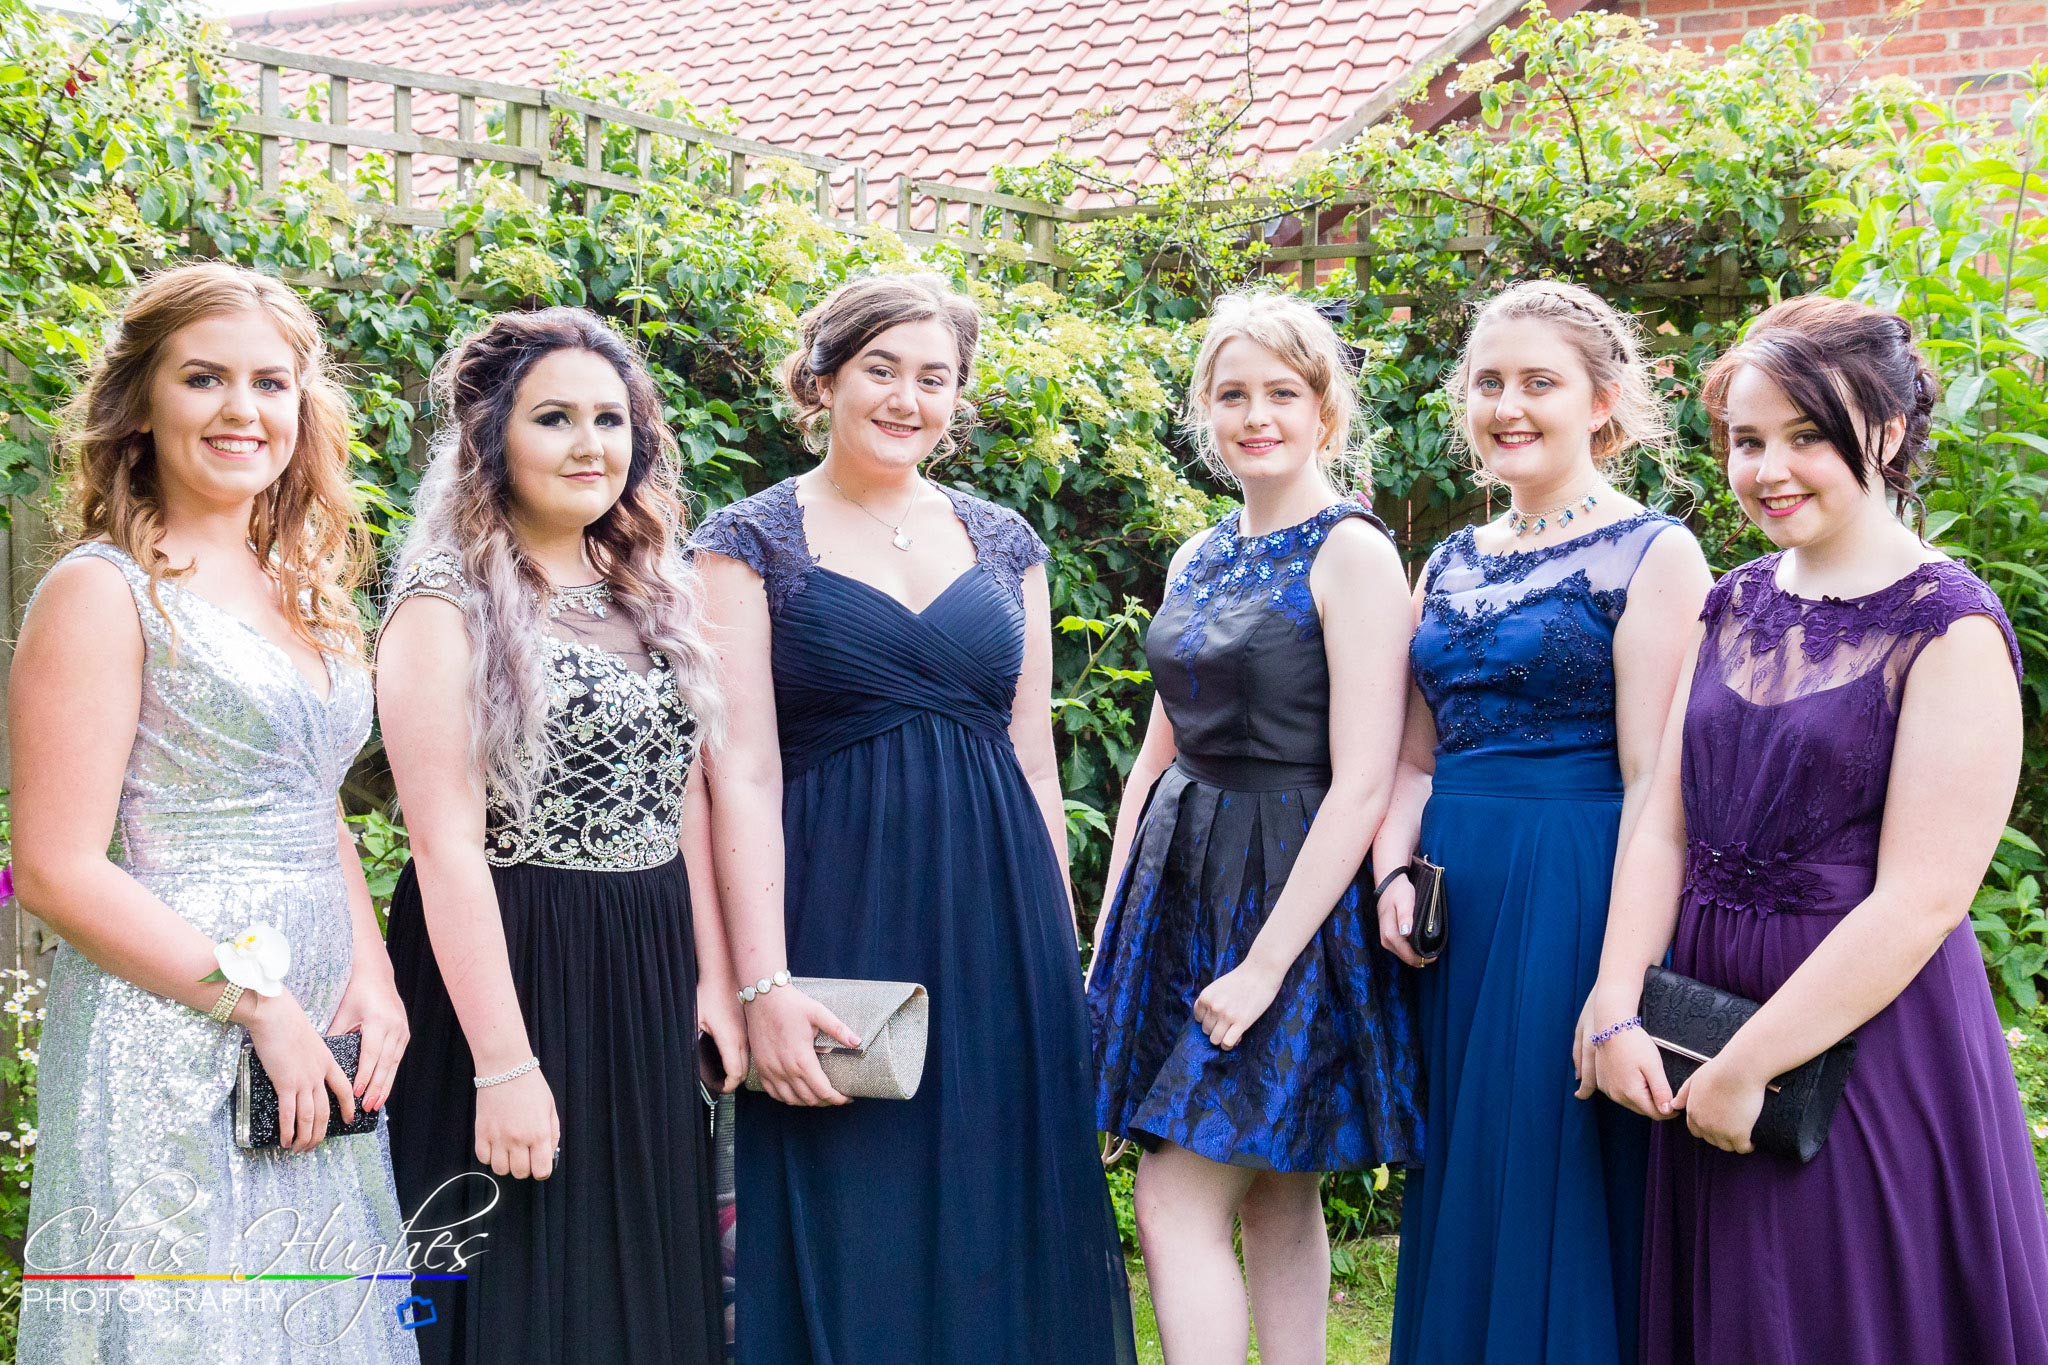 Prom Photos & Garden Party, Darlington